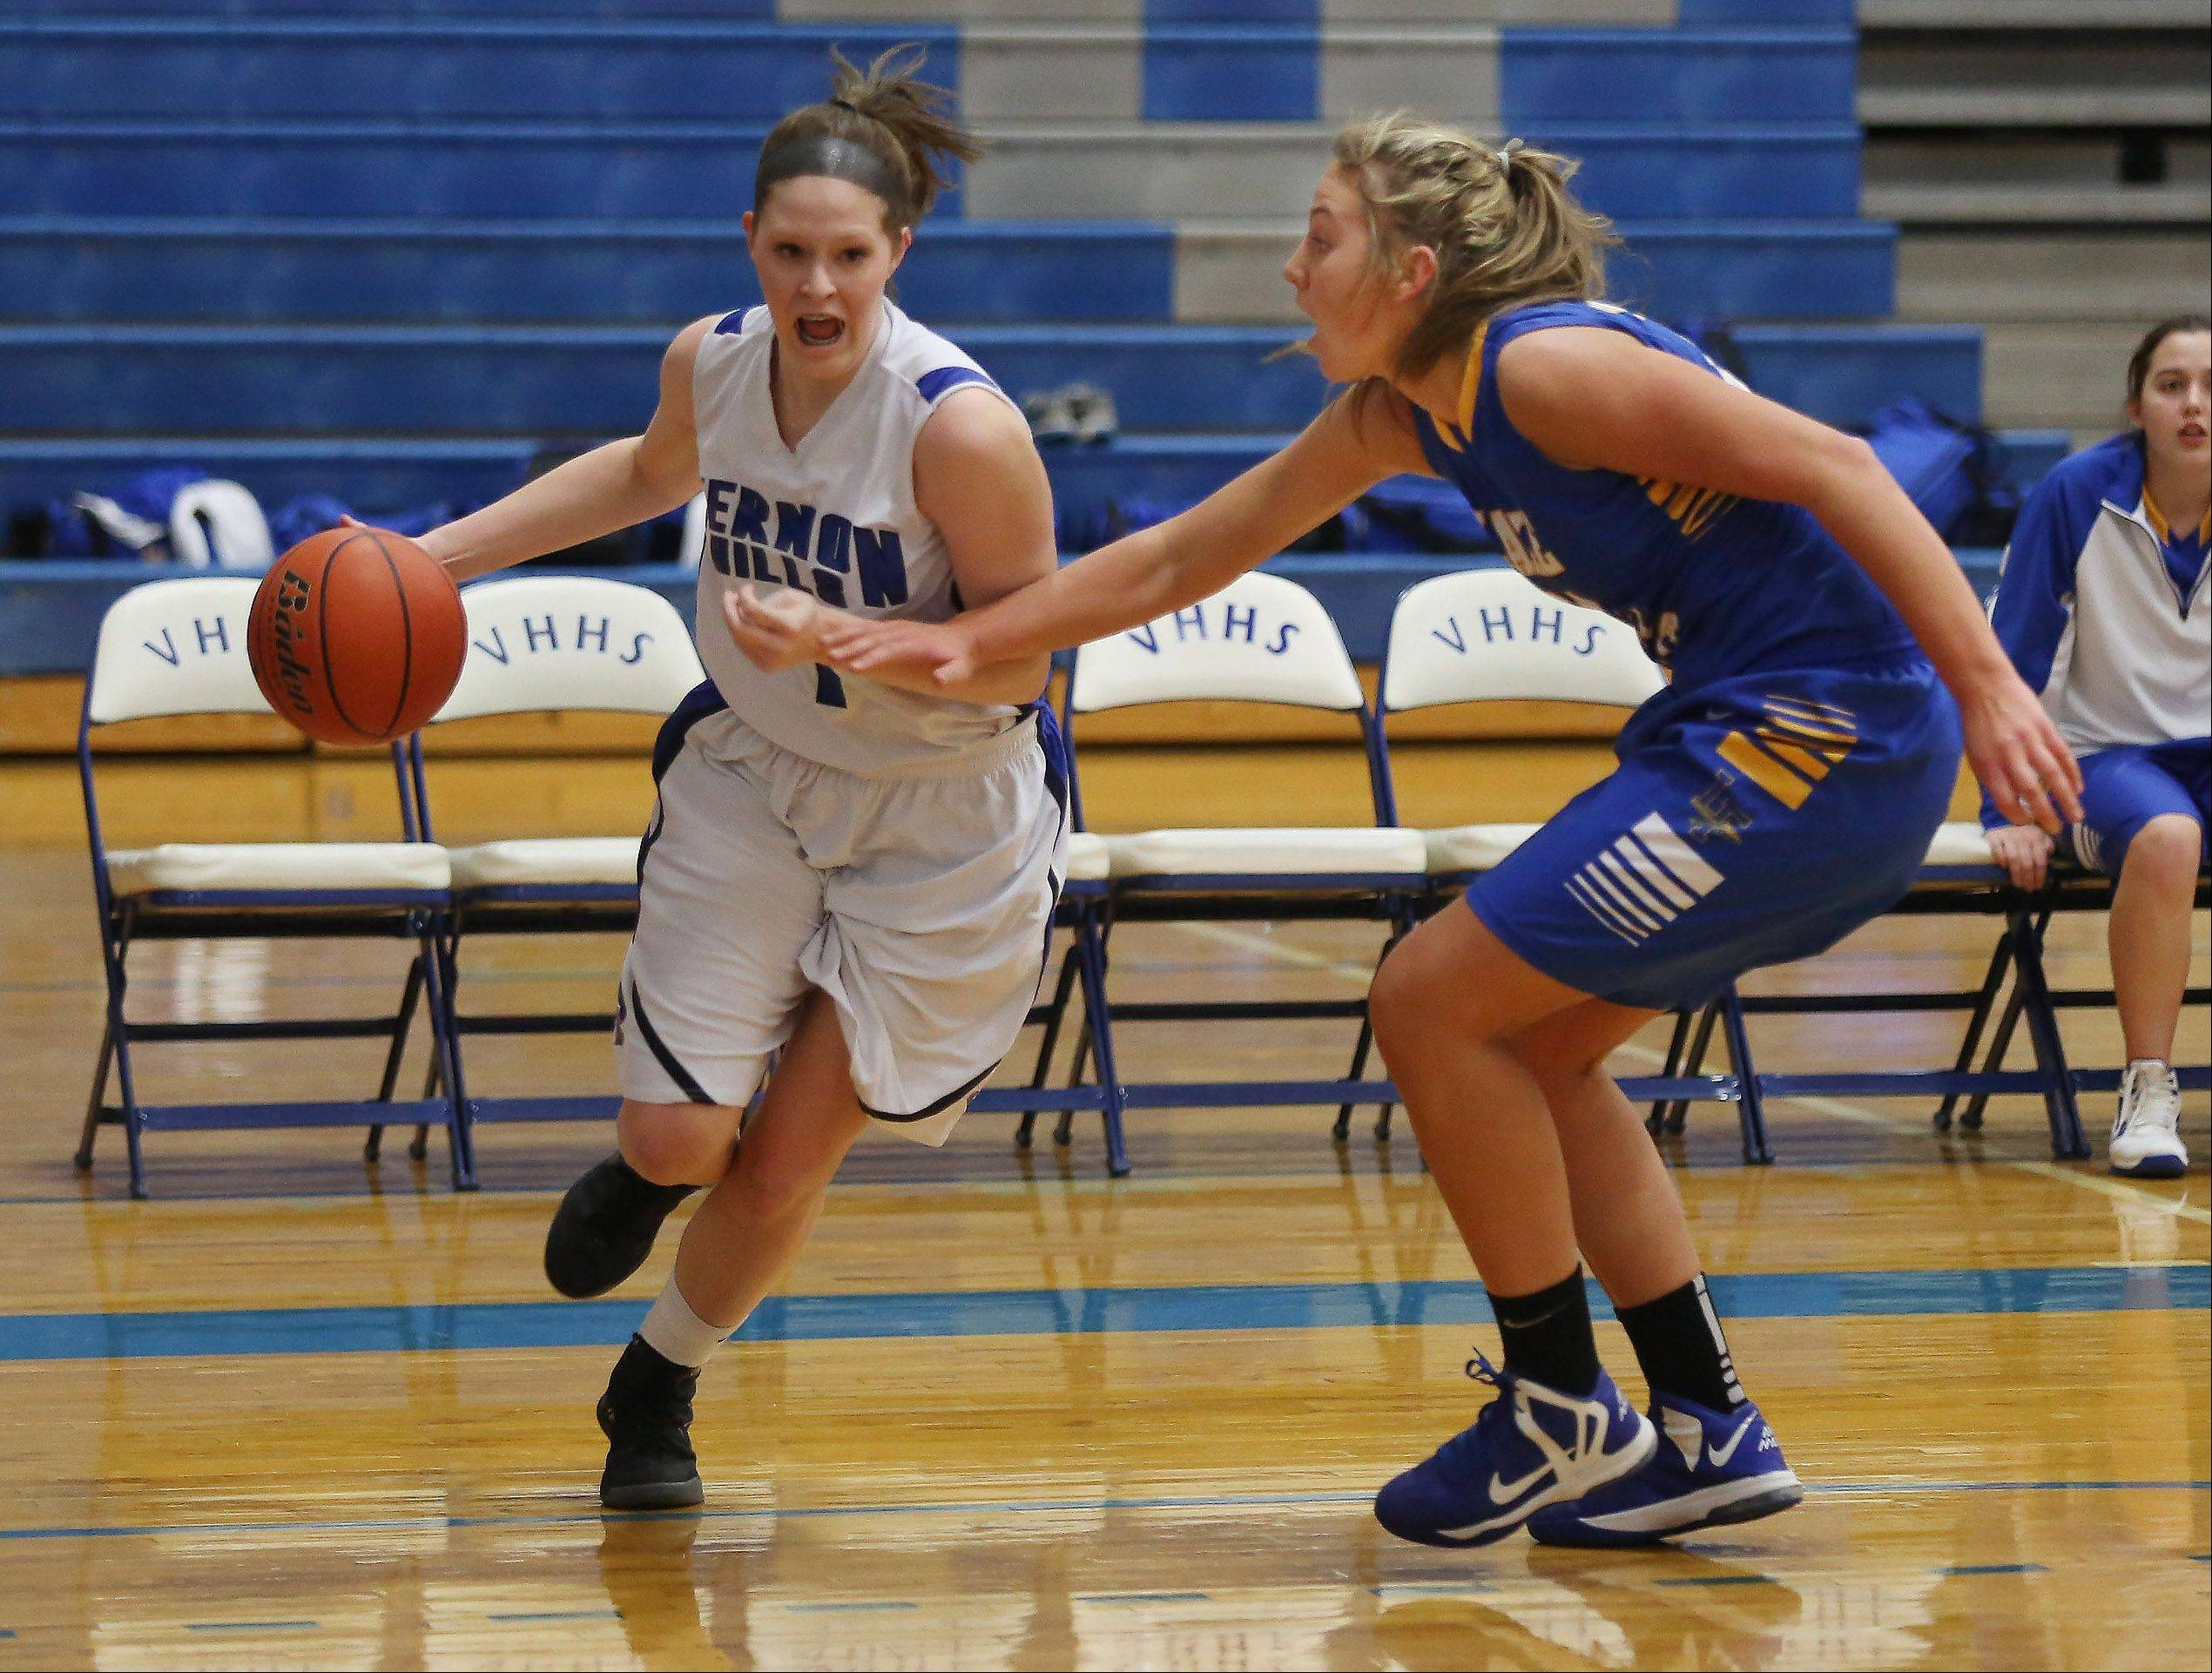 Vernon Hills forward Sydney Smith drives around Lake Forest forward Grace Torkelson on the way to the basket Thursday at Vernon Hills.